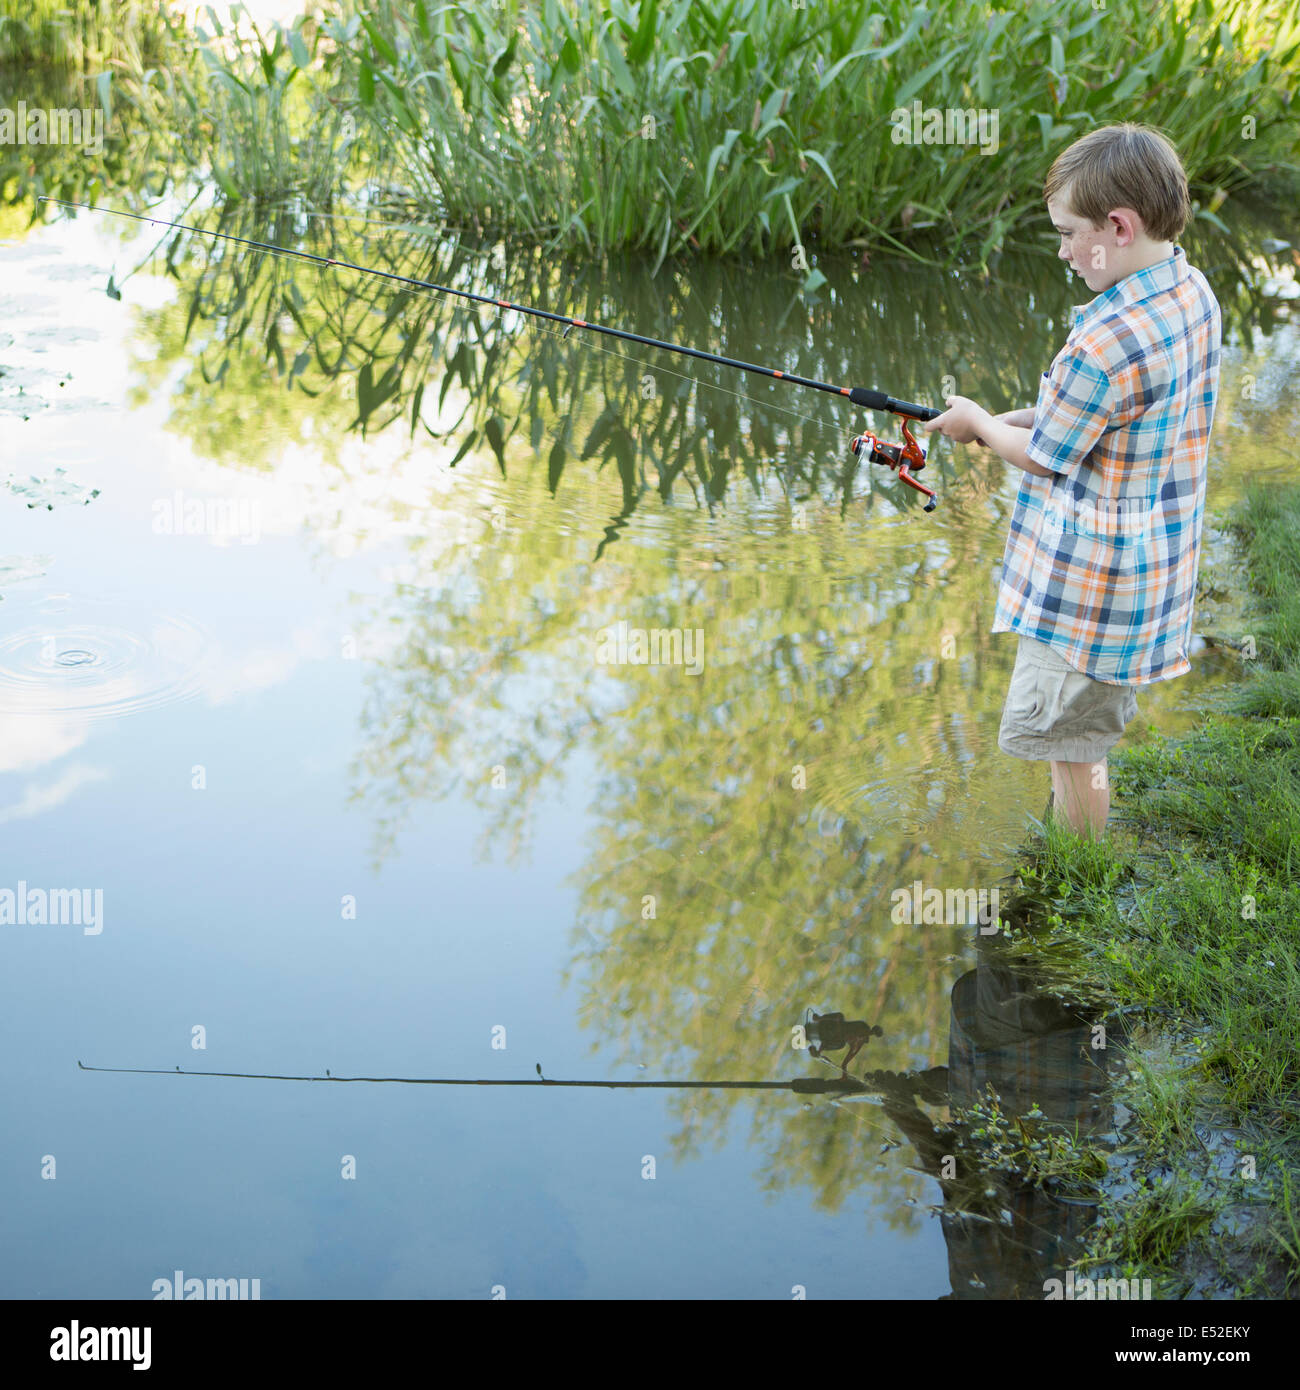 A young boy standing in water fishing with a rod. - Stock Image